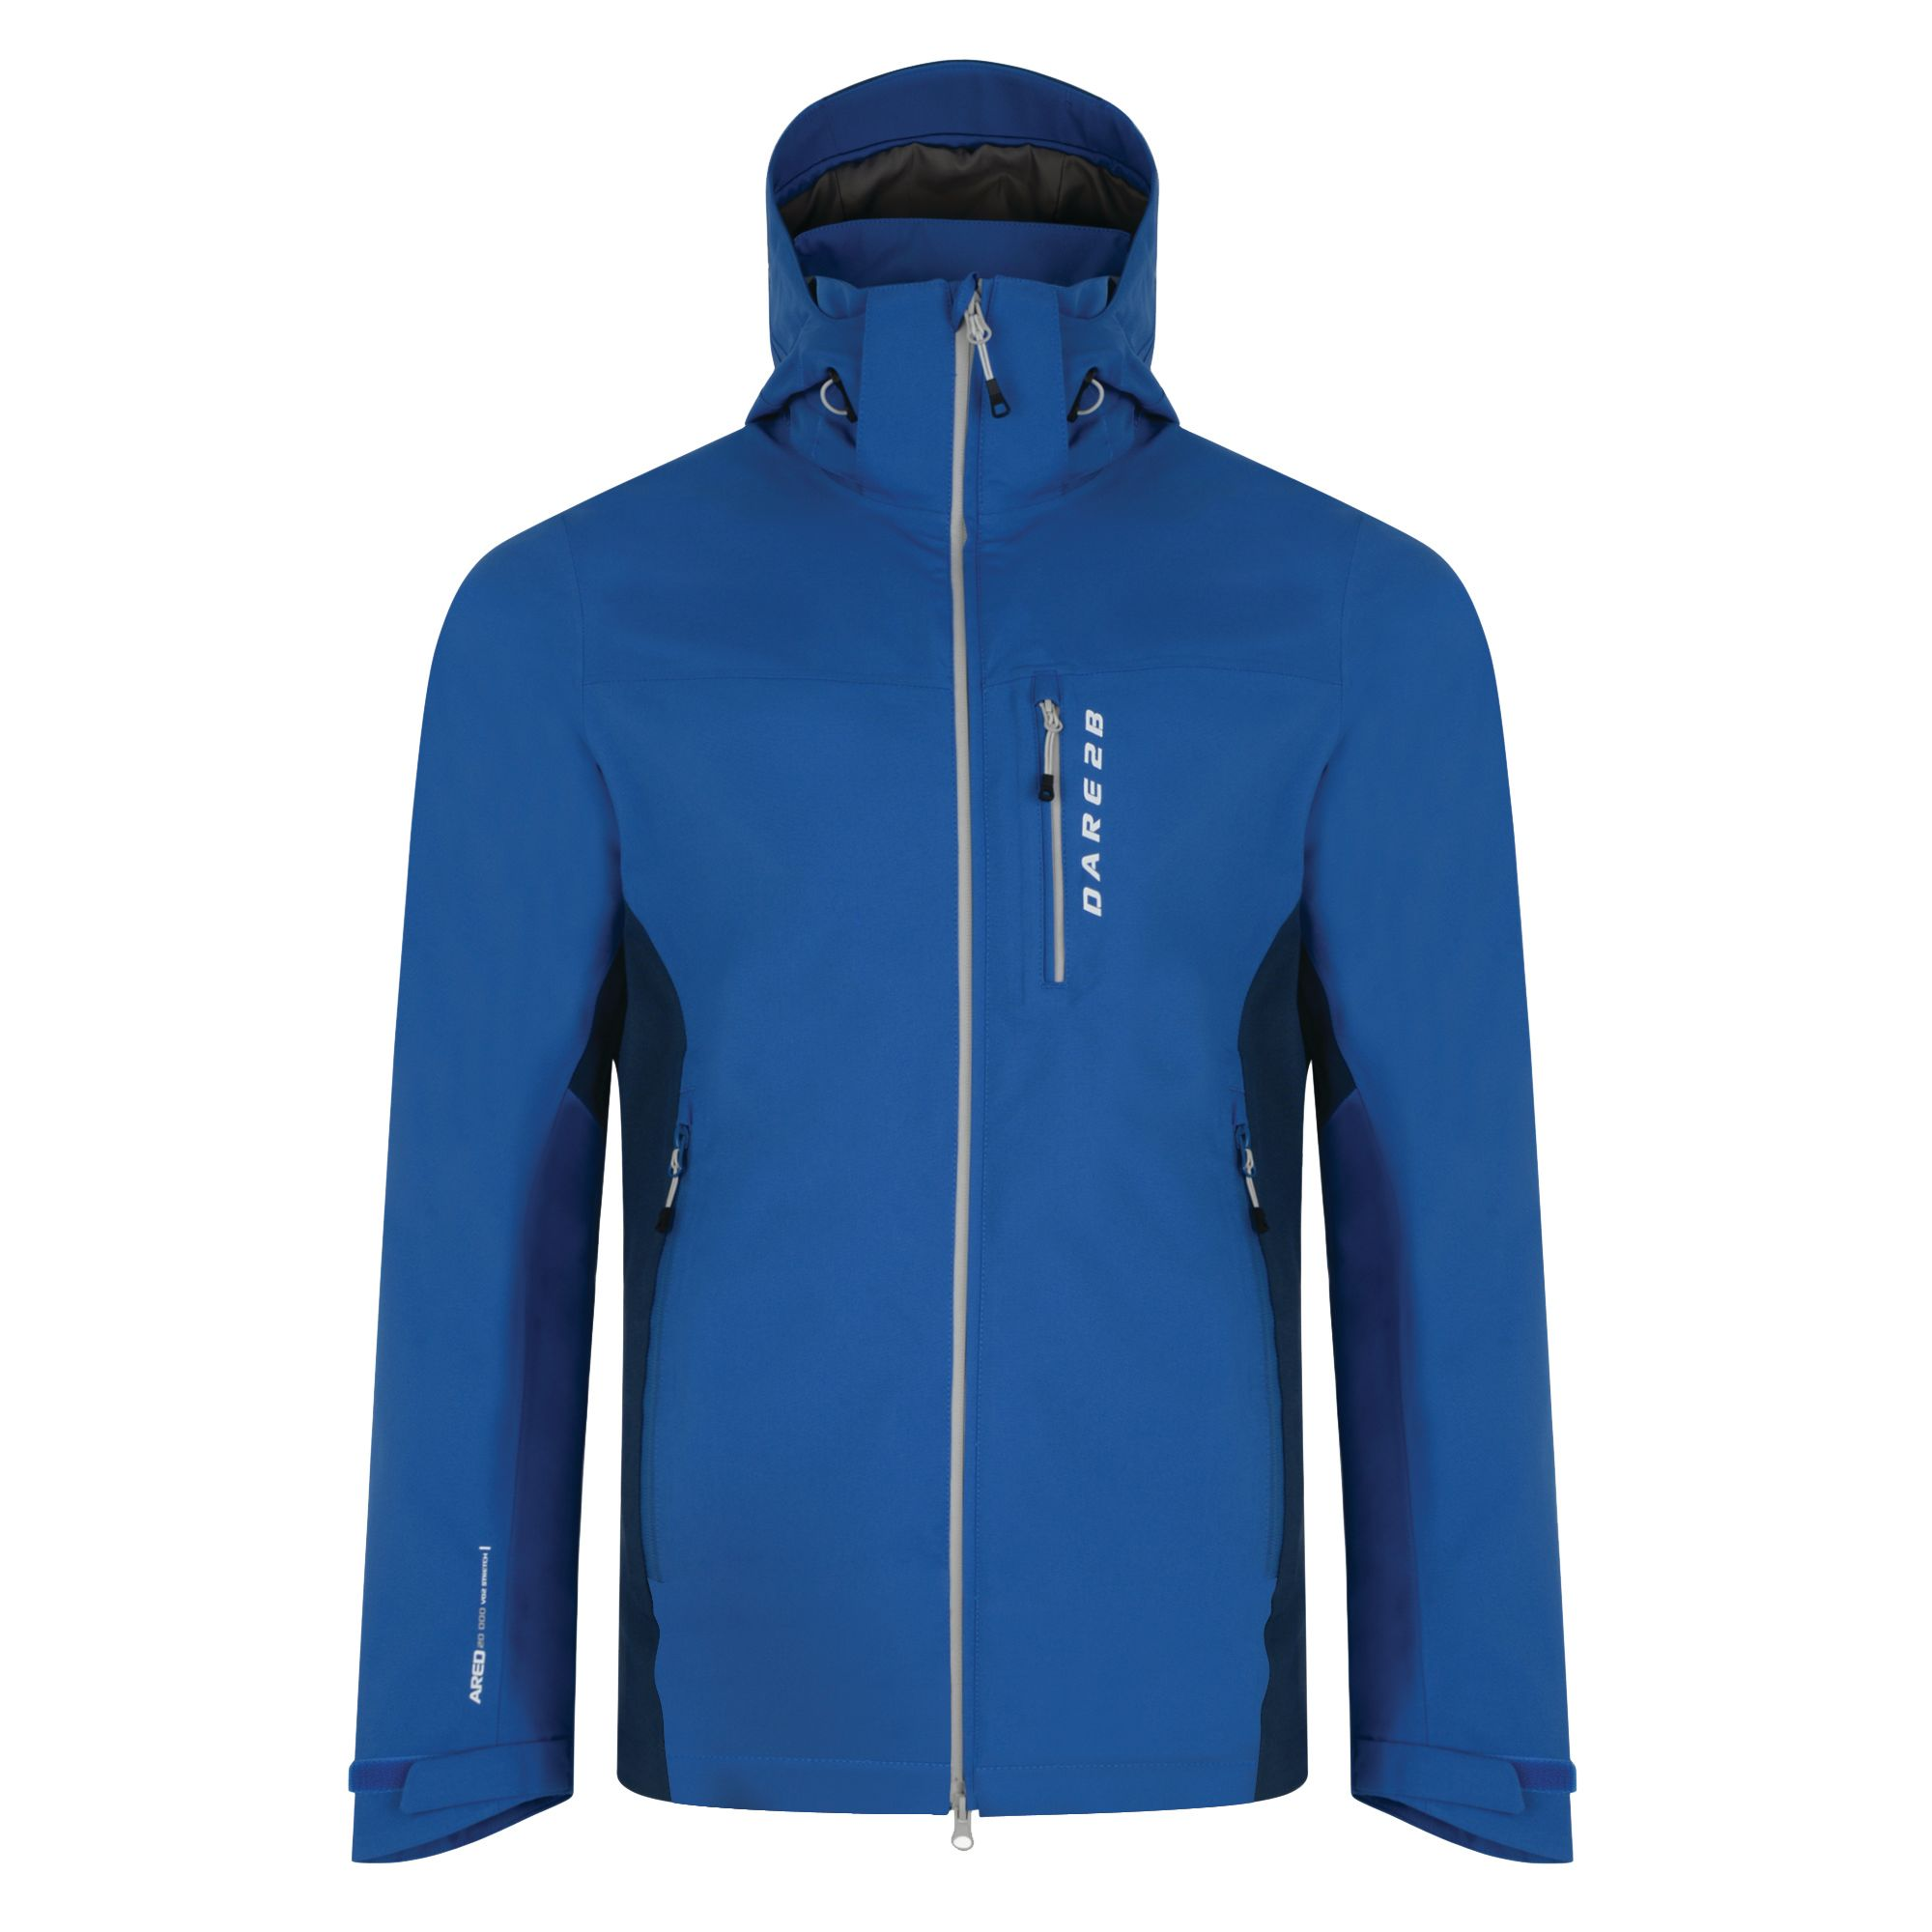 Mens-Regatta-Lightweight-Waterproof-Windproof-Jacket-Clearance-RRP-70-00 thumbnail 17